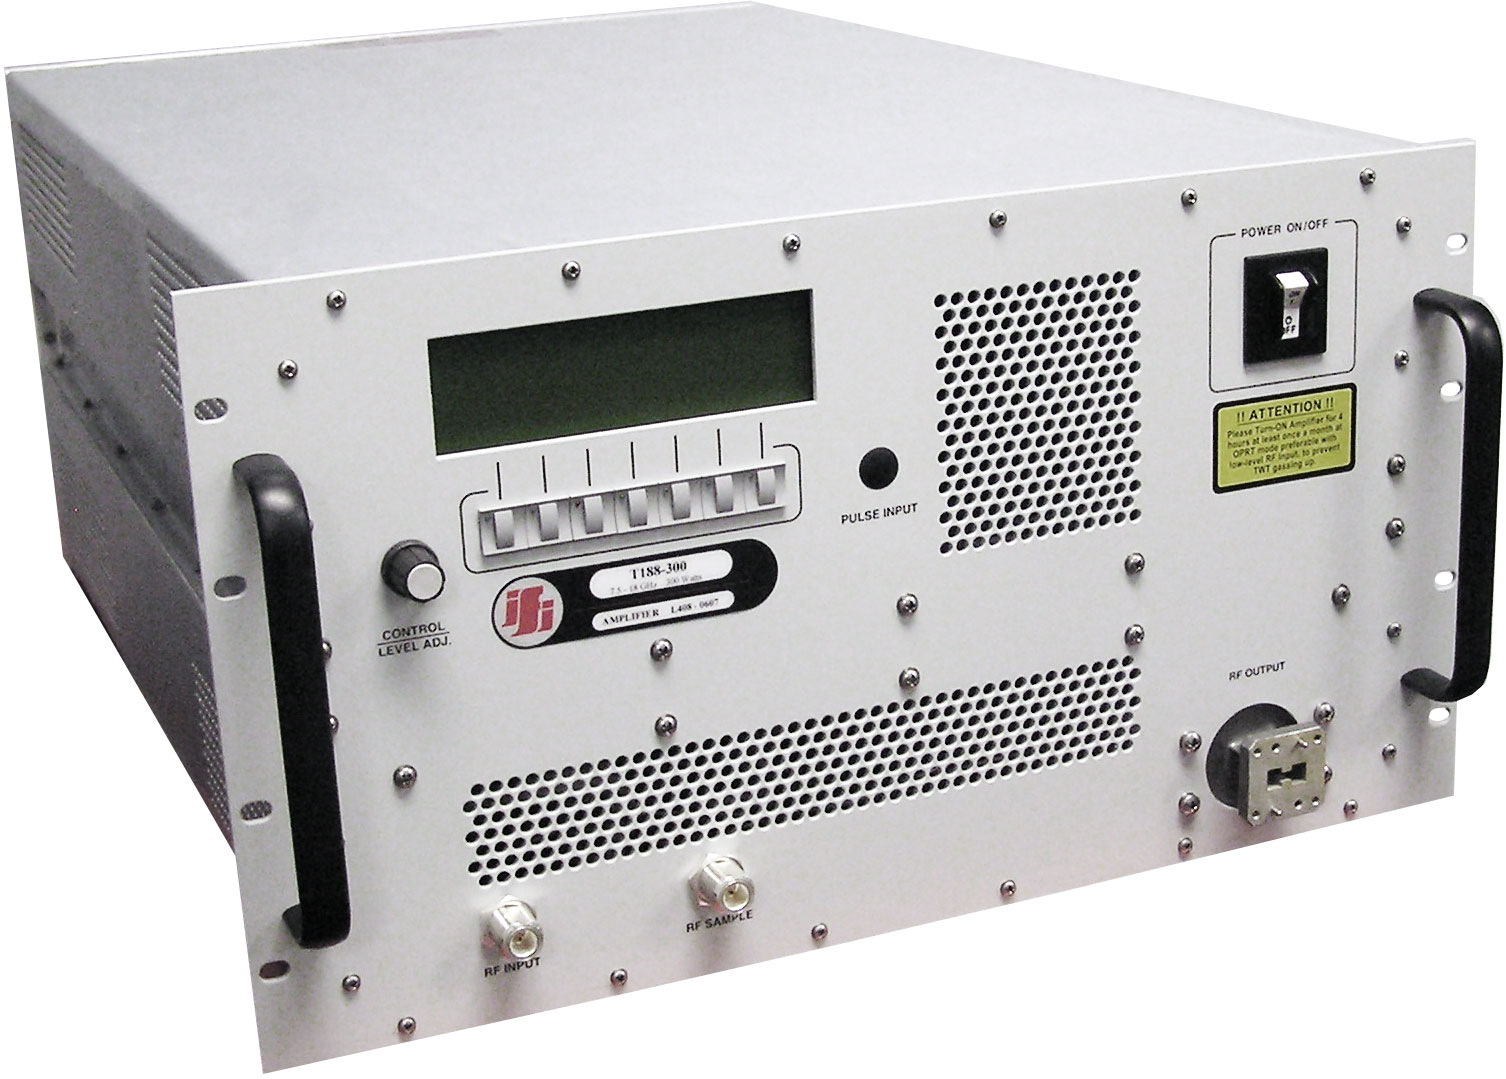 IFI T188-300 TWT Amplifier 7.5 GHz - 18.0 GHz, 300 Watt